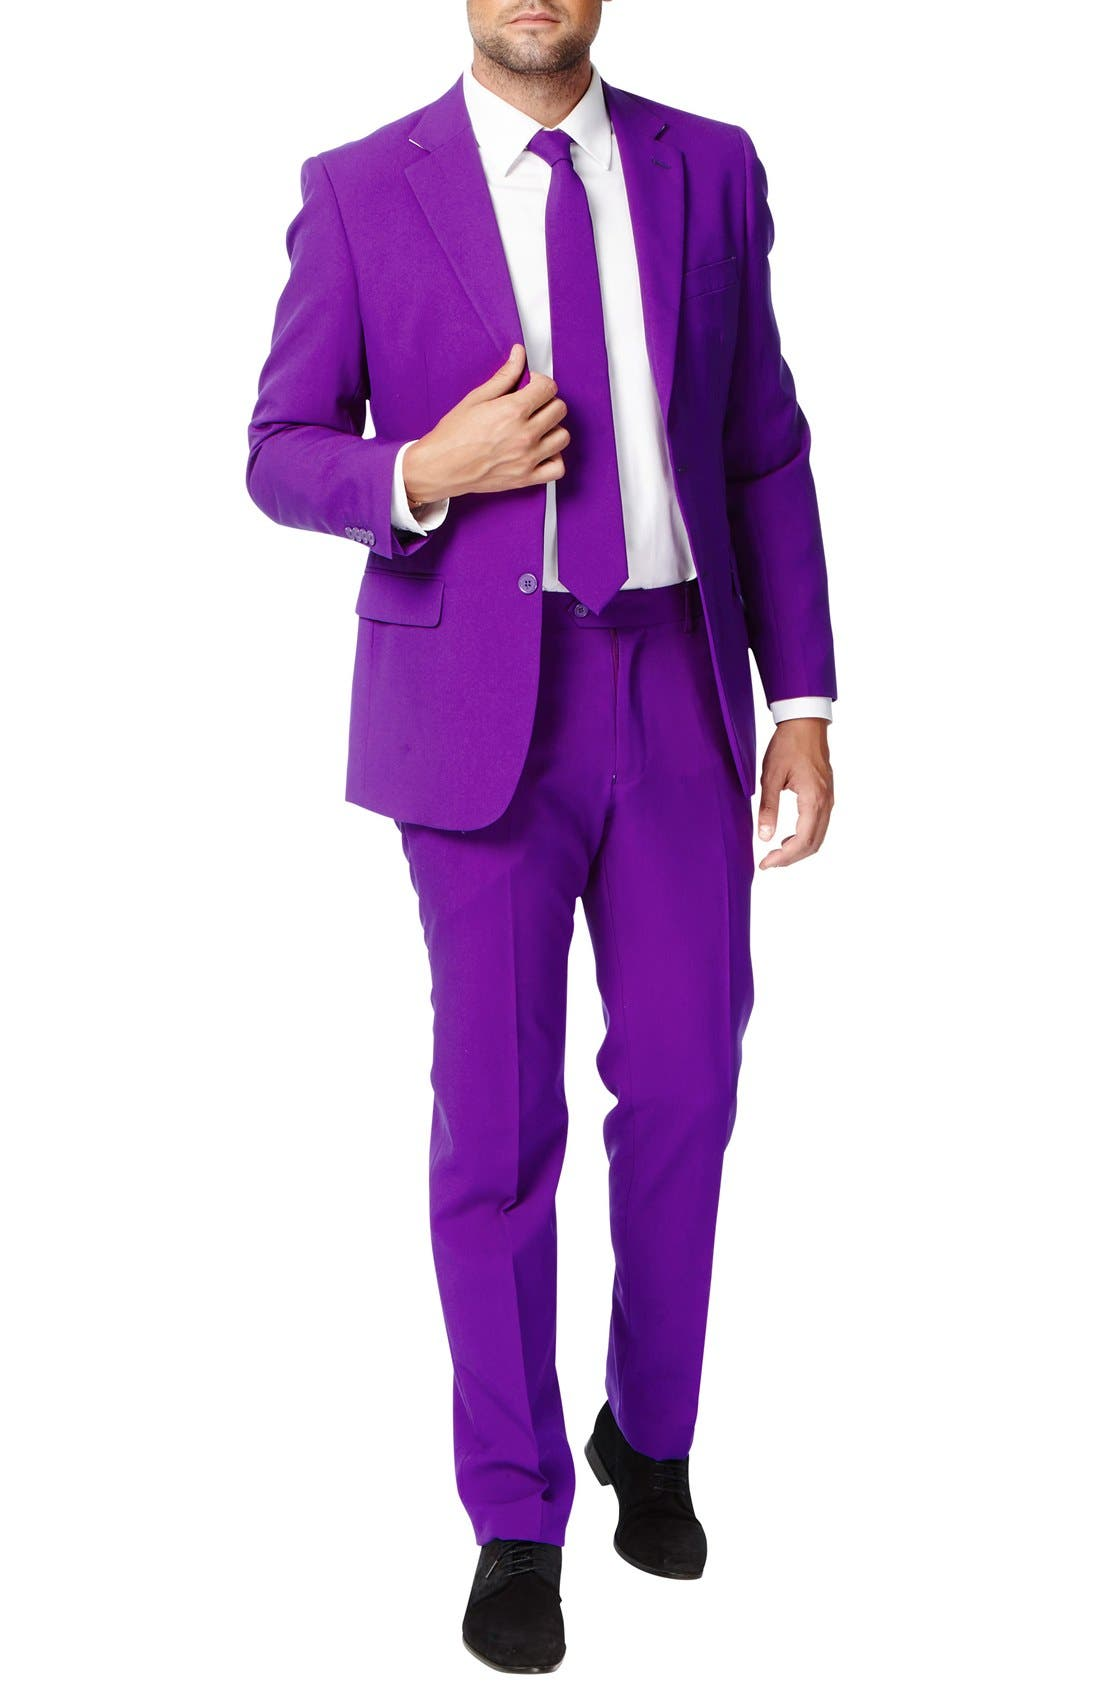 Main Image - OppoSuits 'Purple Prince' Trim Fit Two-Piece Suit with Tie